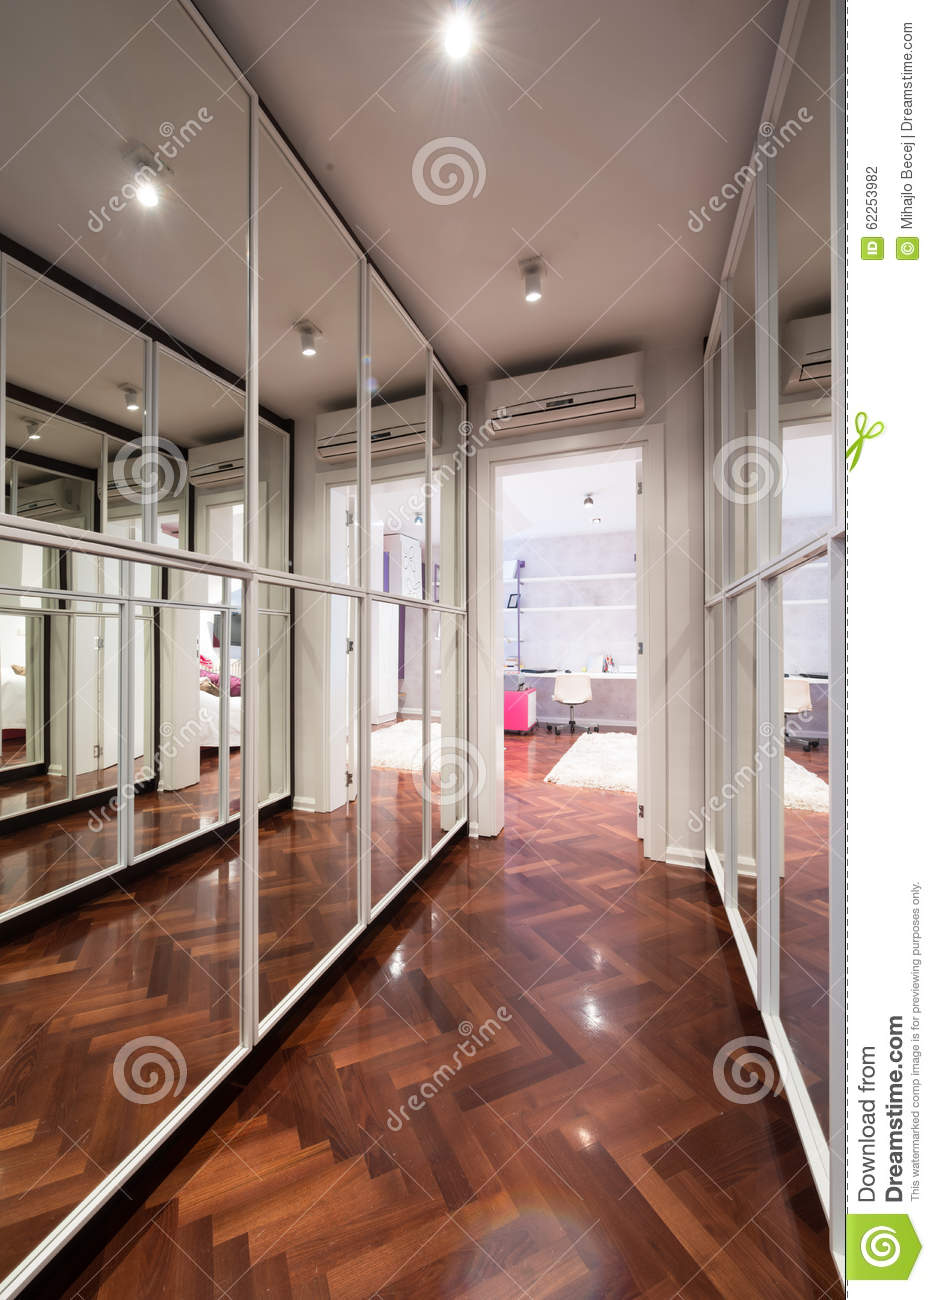 Modern corridor interior with mirror wardrobe doors stock for Armoire couloir design